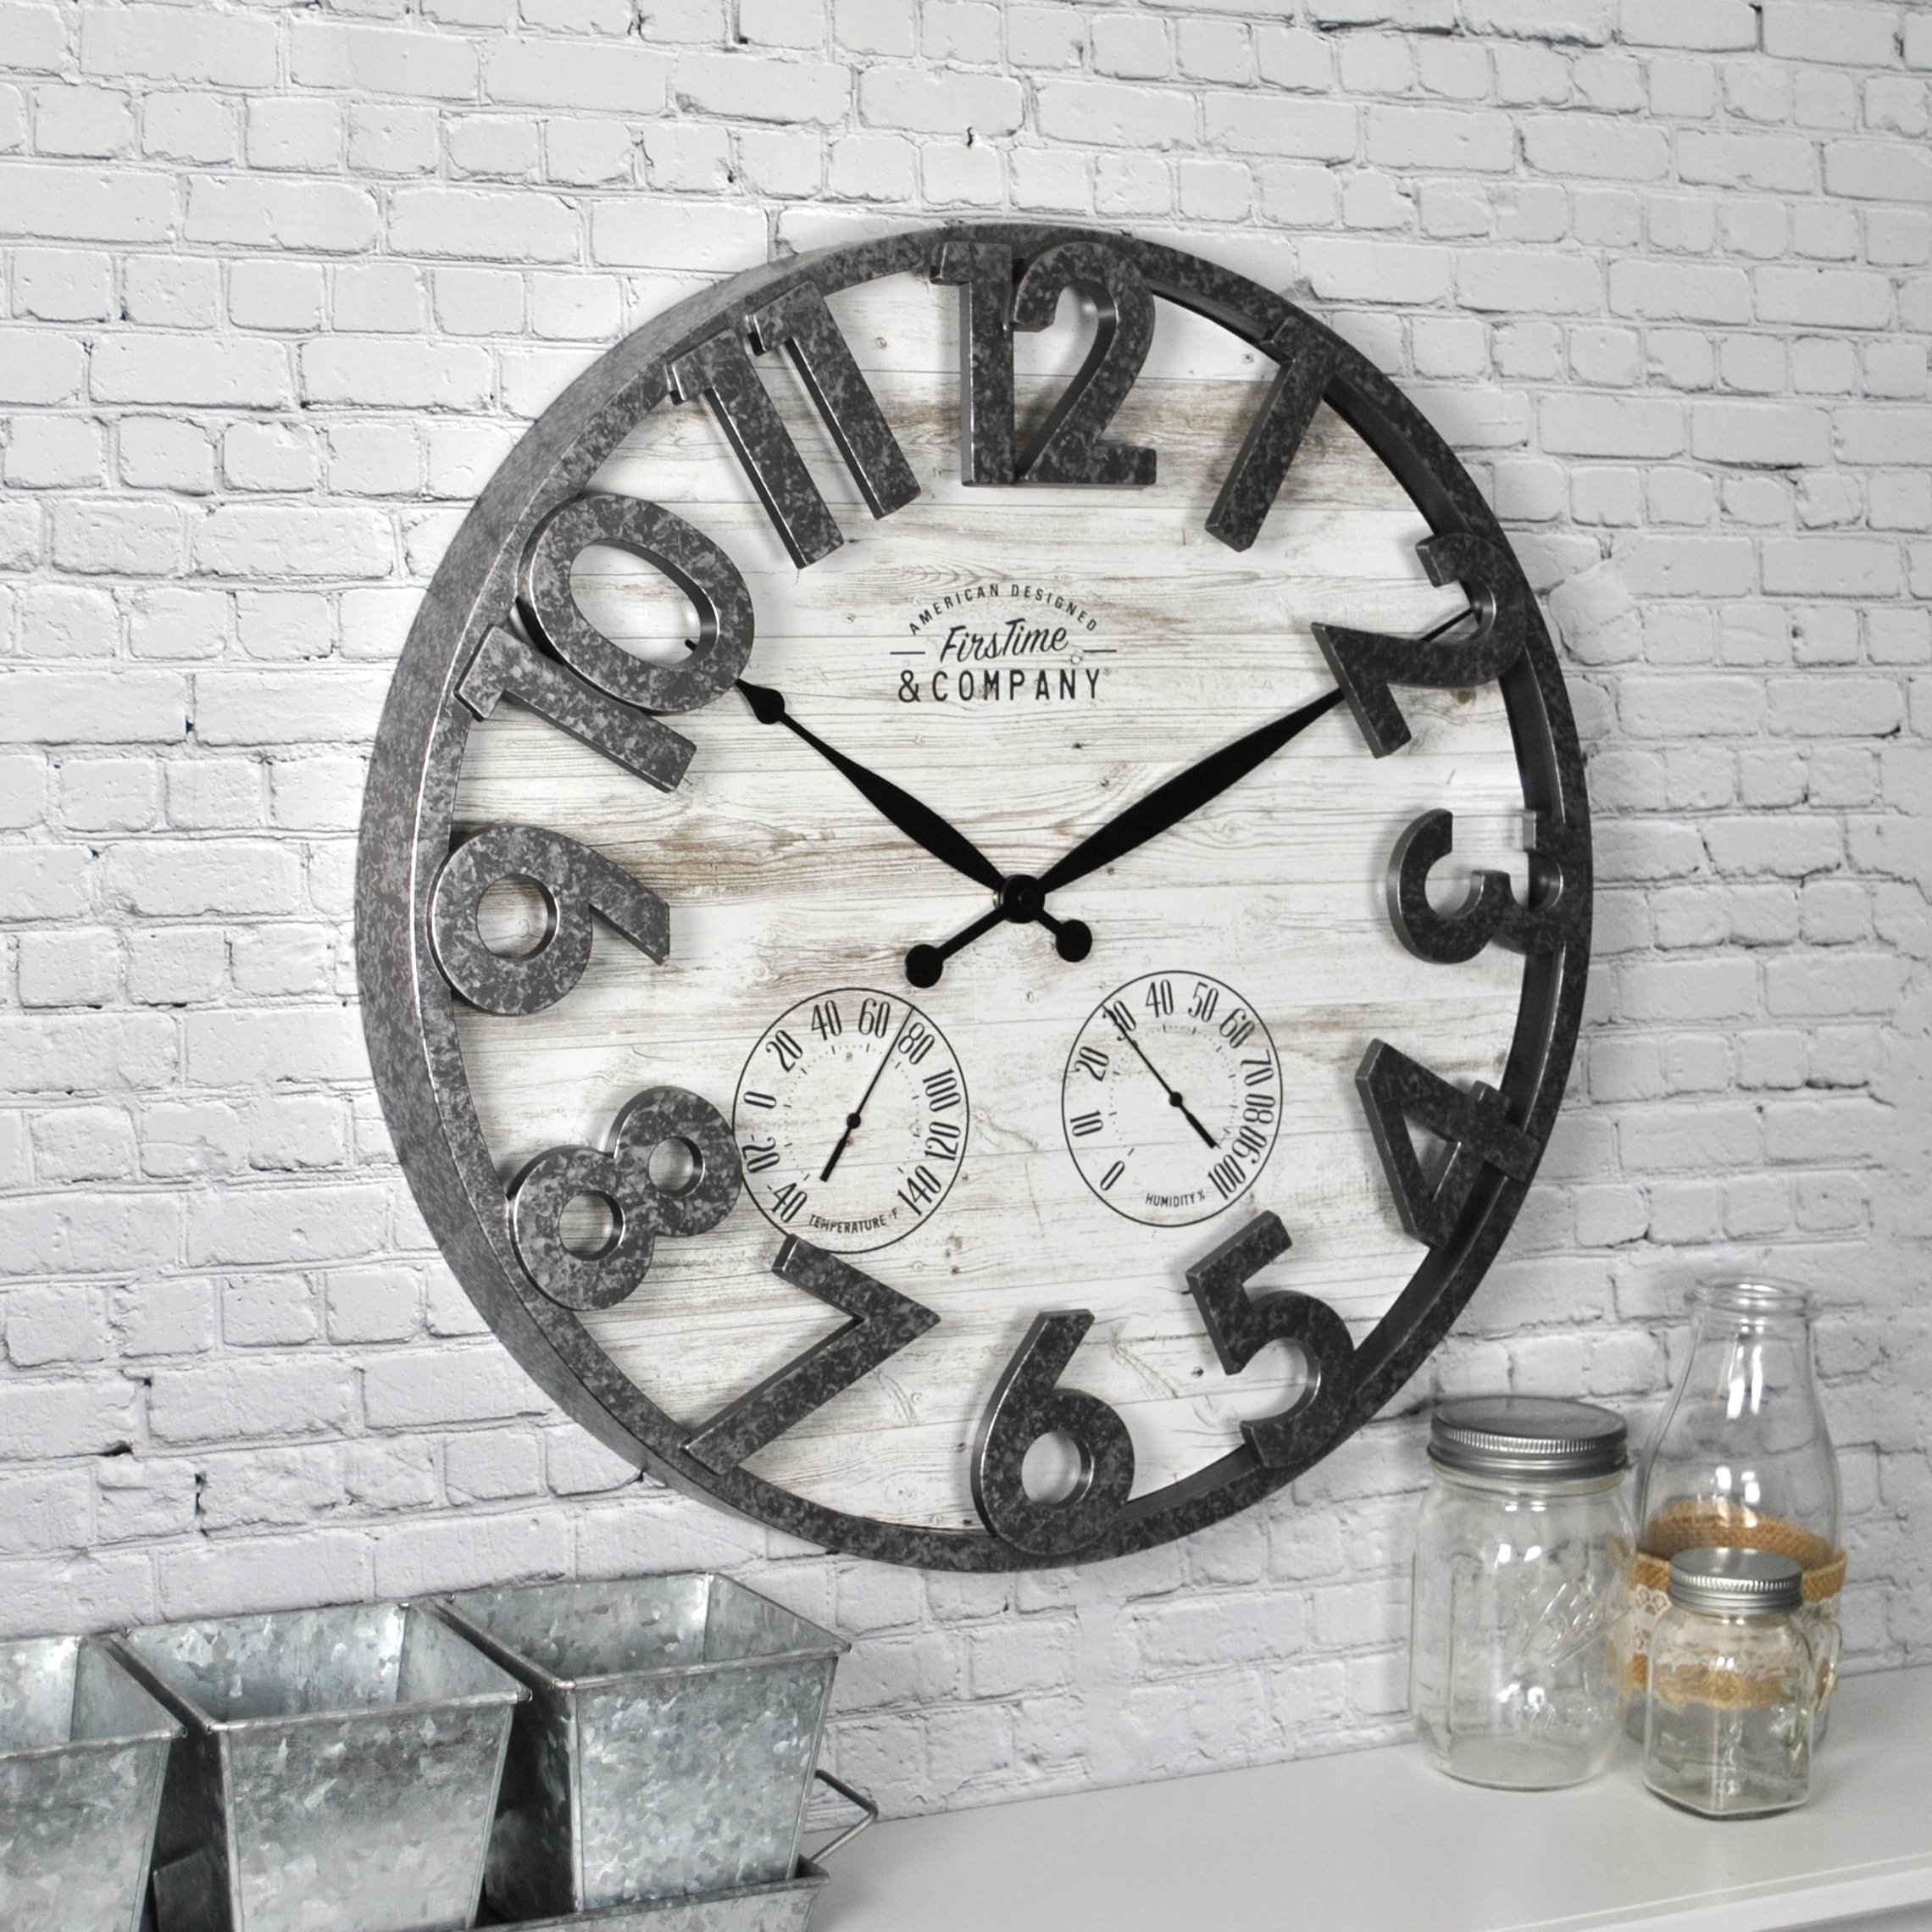 FirsTime & Co. 31038 Shiplap Outdoor Wall Clock, 18'', Light Gray by FirsTime & Co.